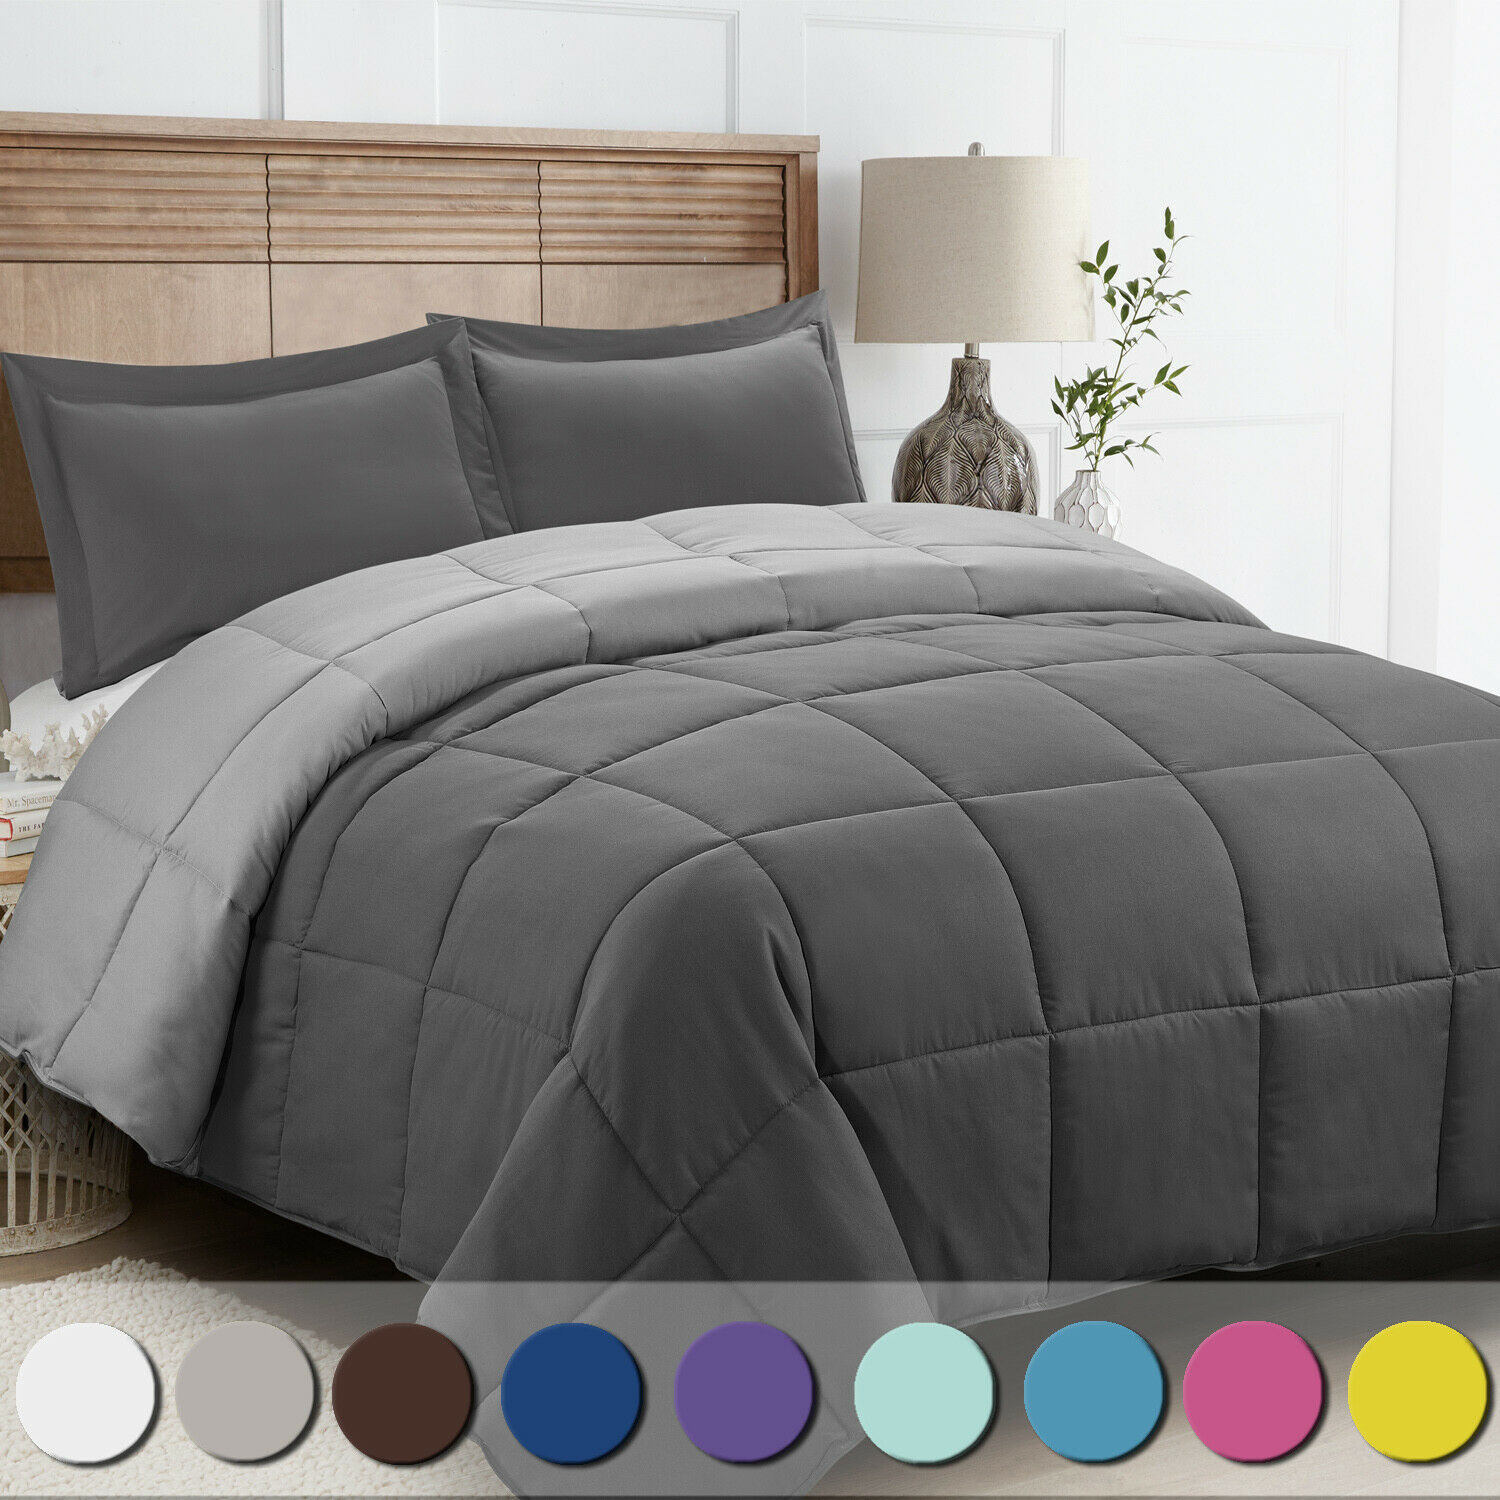 Ugg Reversible 3 Piece Queen Full Comforter Set In Grey For Sale Online Ebay